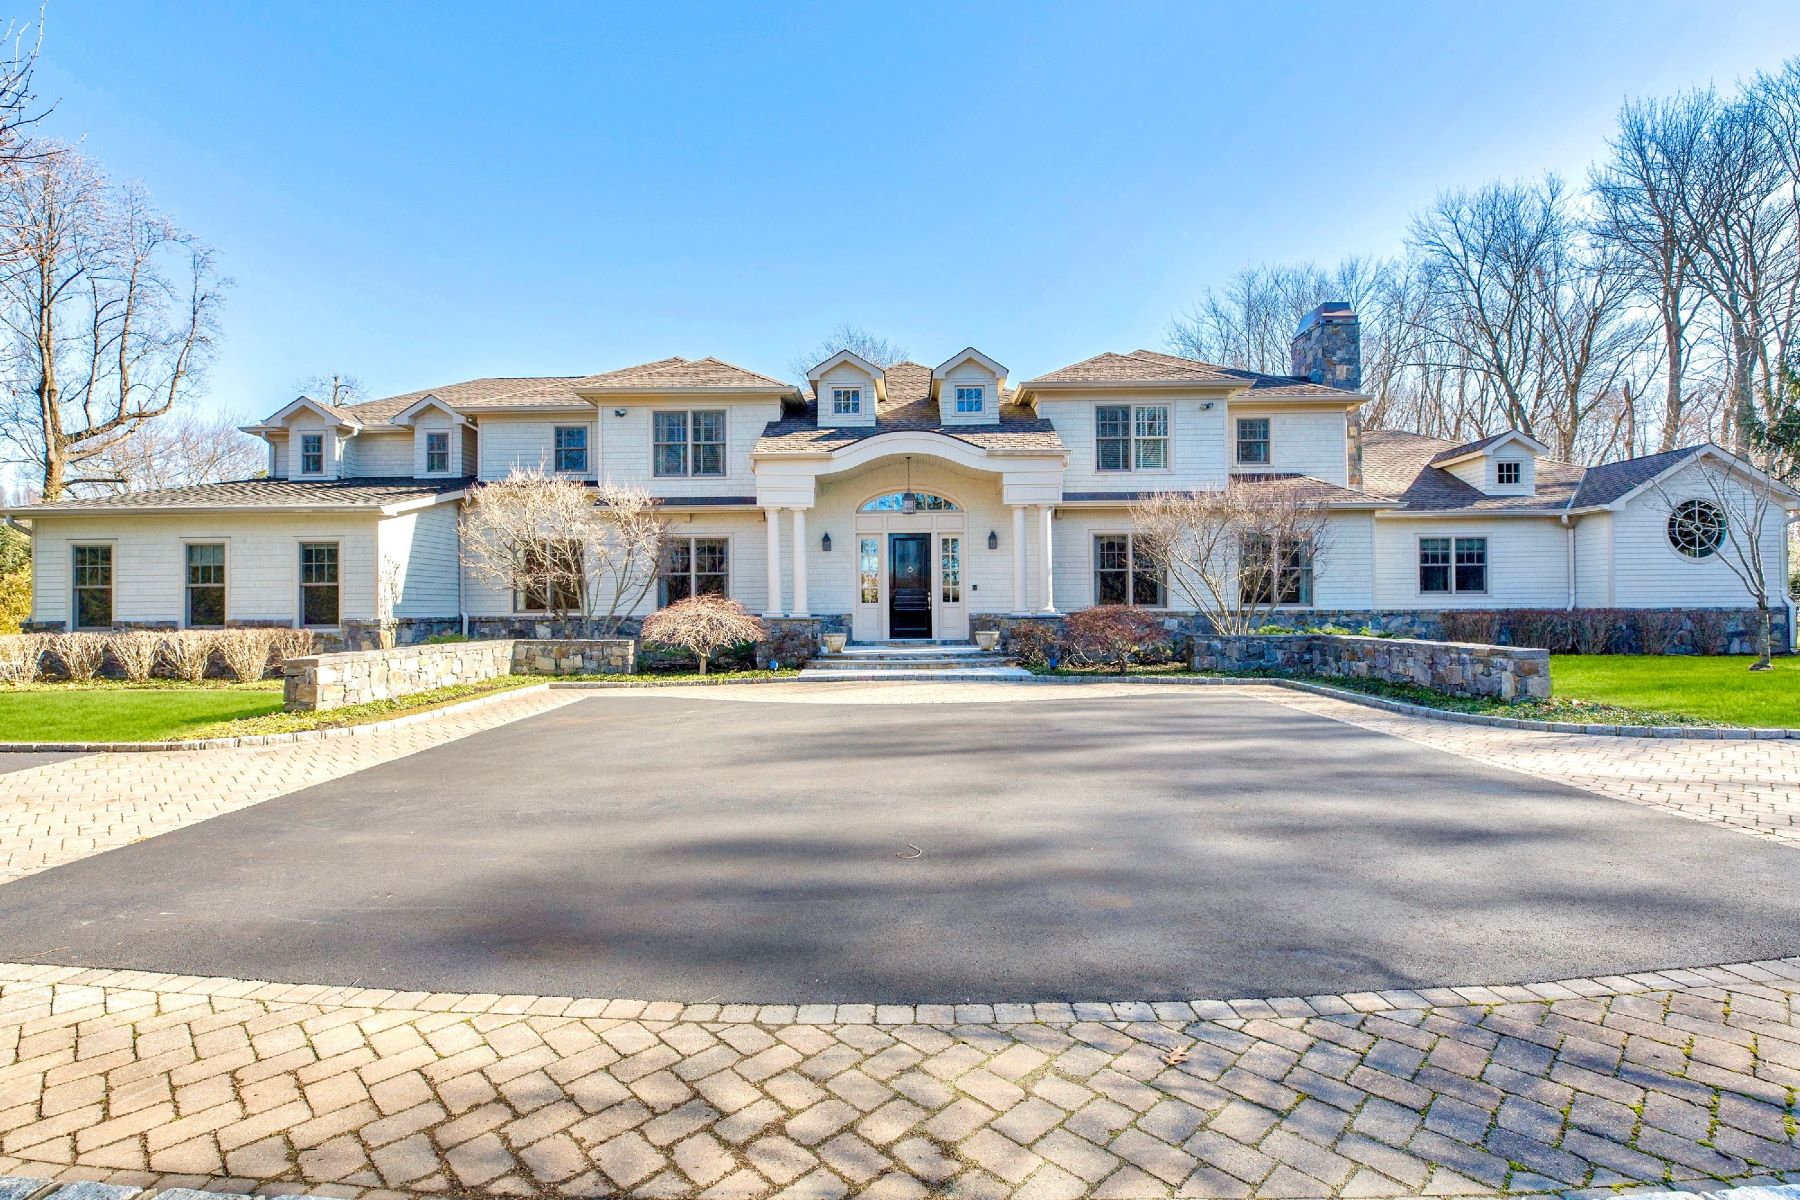 Single Family Homes for Sale at Sands Point 6 Harriman Dr Sands Point, New York 11050 United States